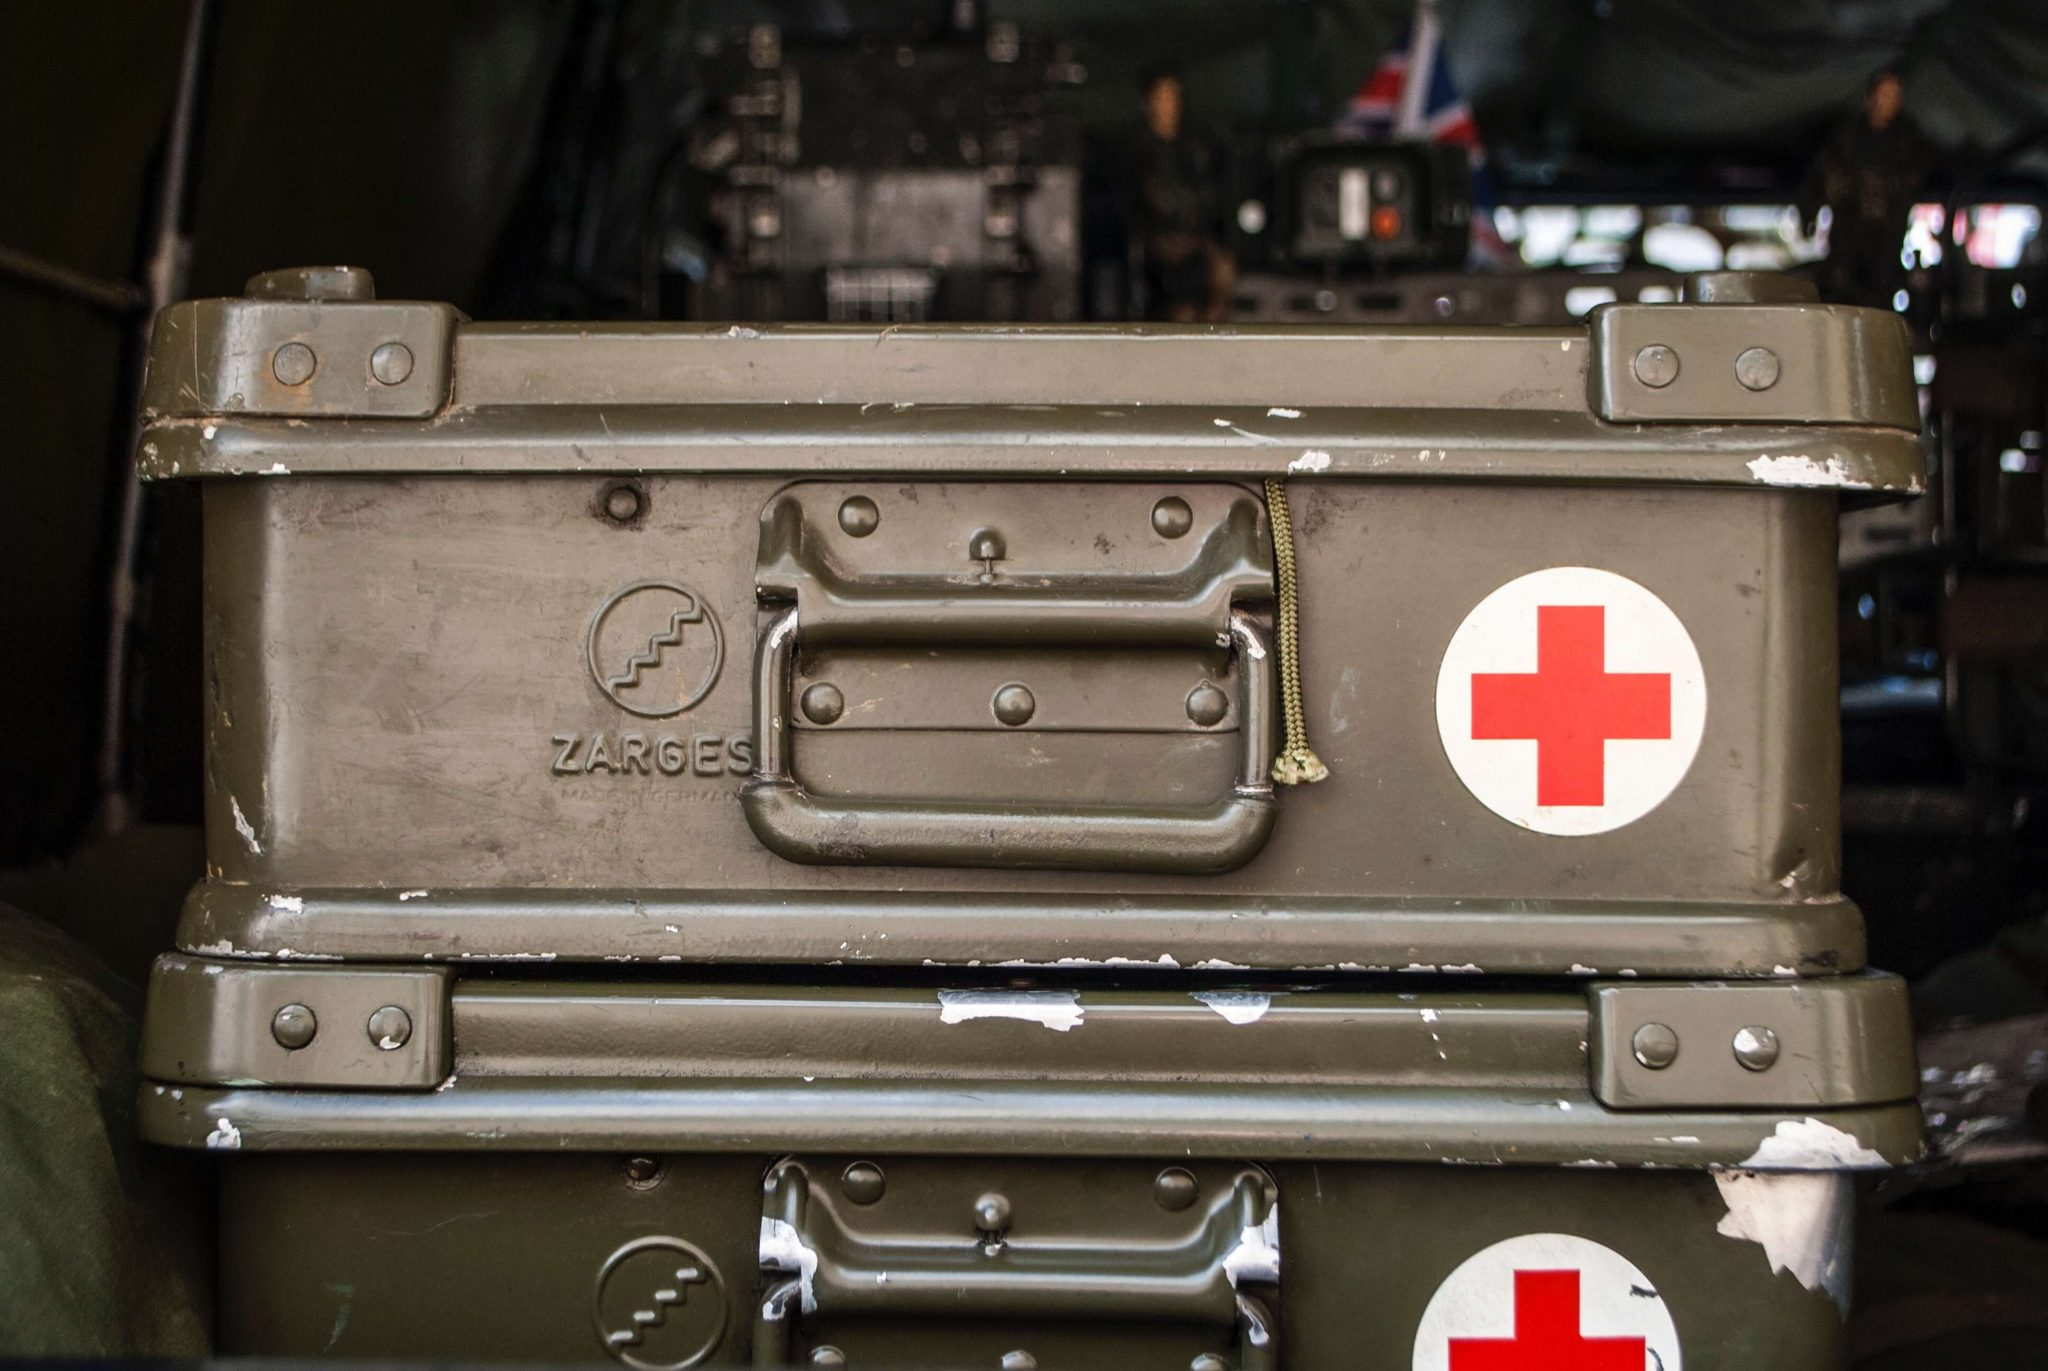 home-first-aid-kit-metal-first-aid-container